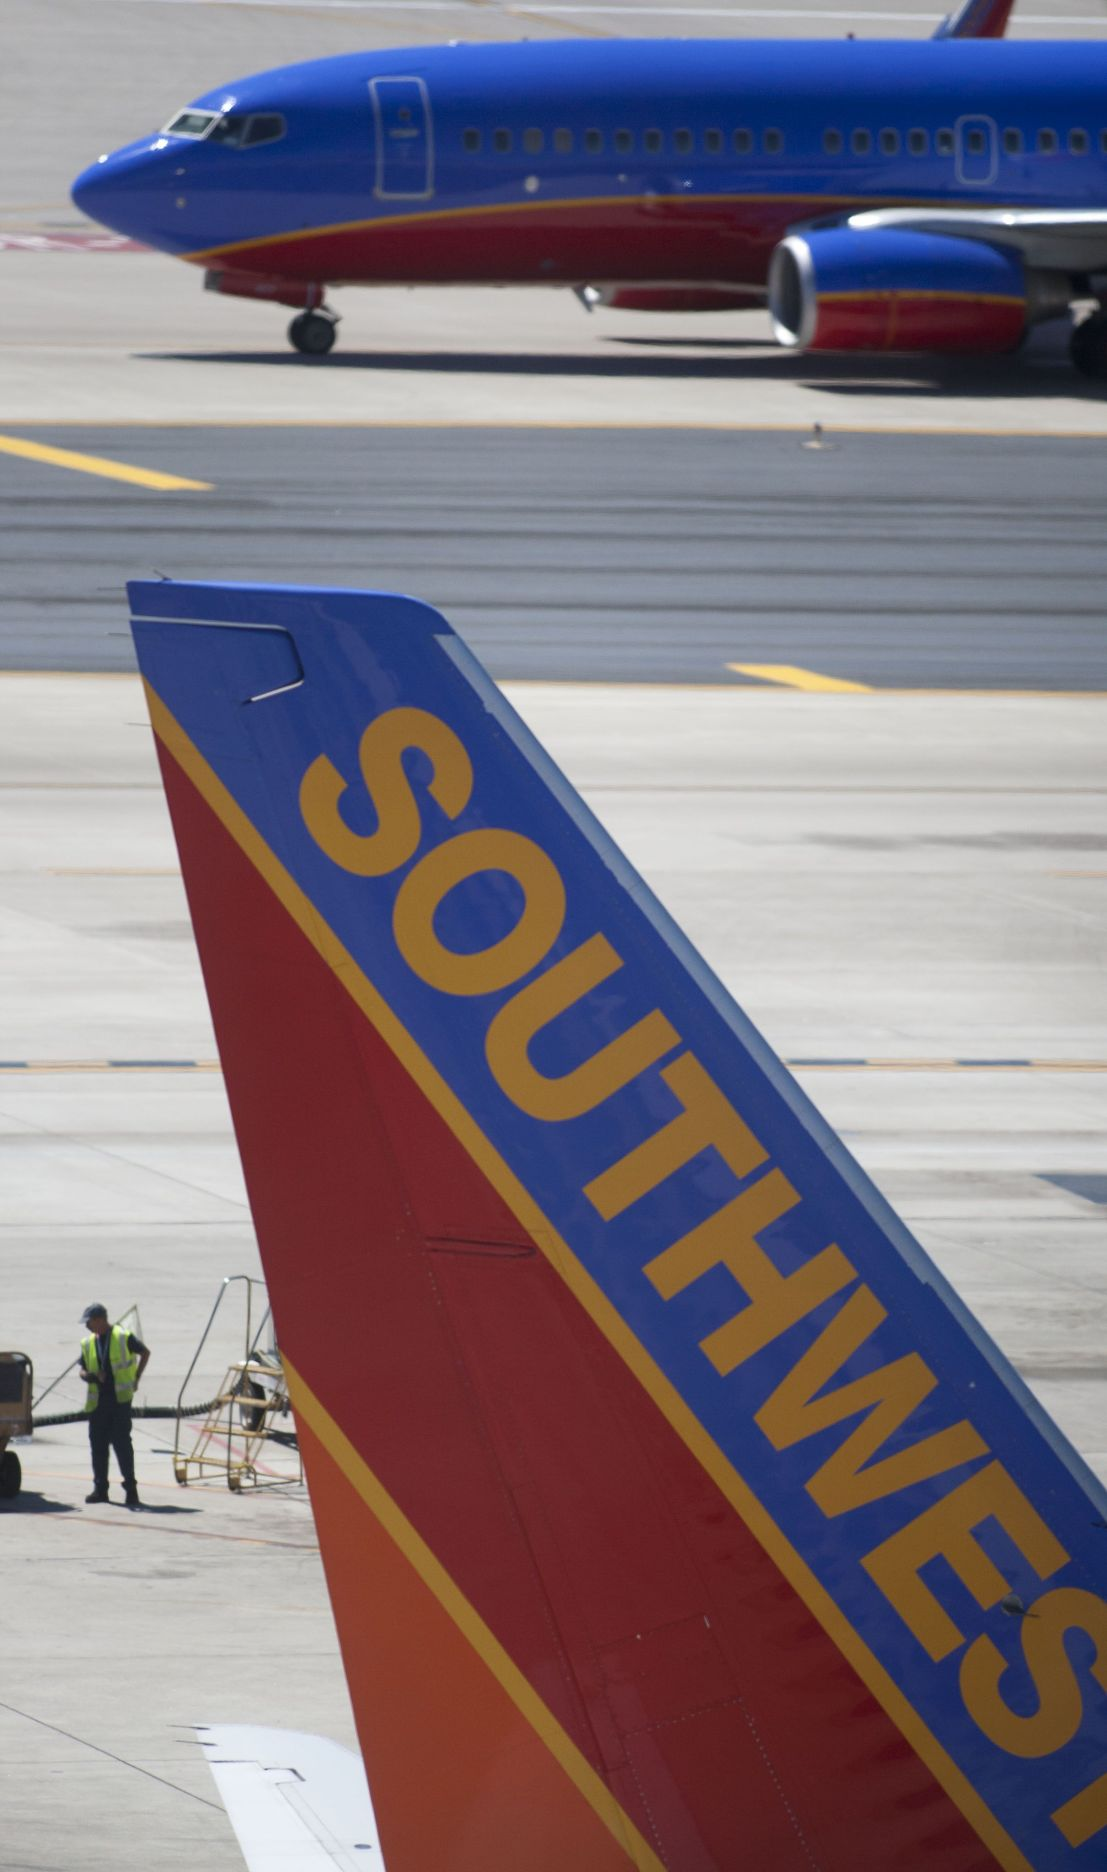 Led by Southwest, big airlines raise some fares $10 each way